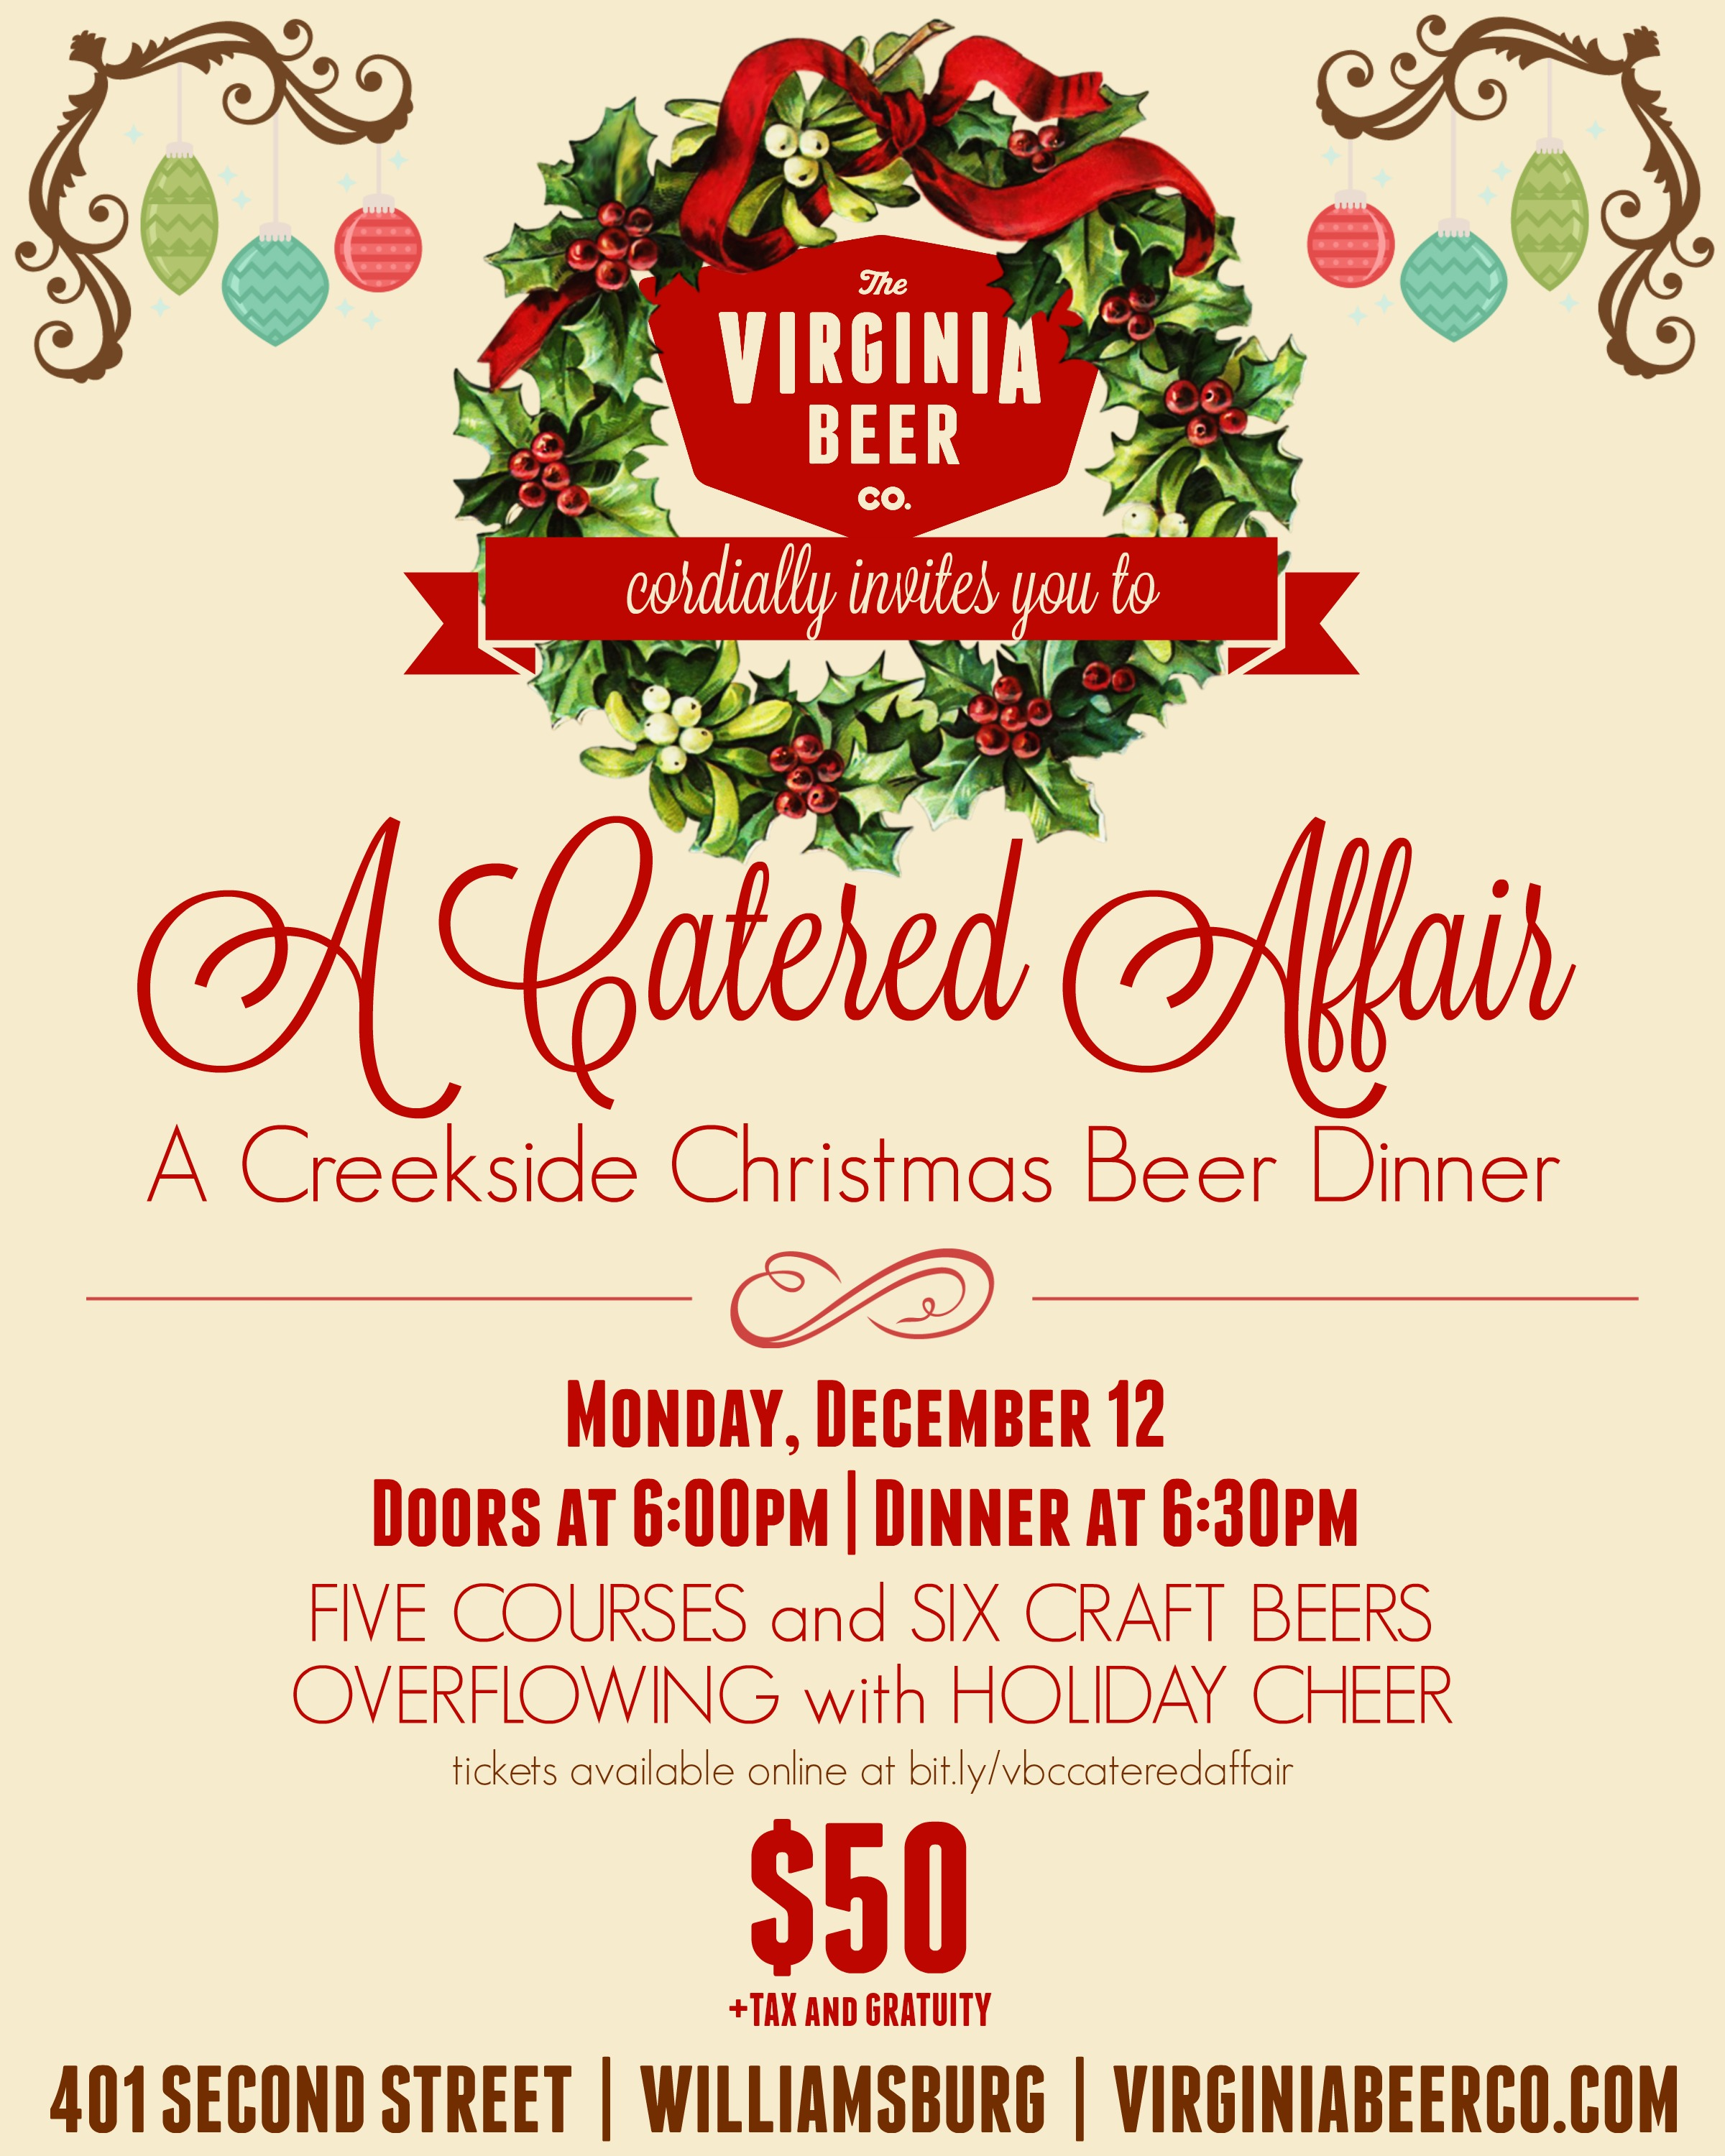 vbc christmas beer dinner new flourish 8x10.jpg